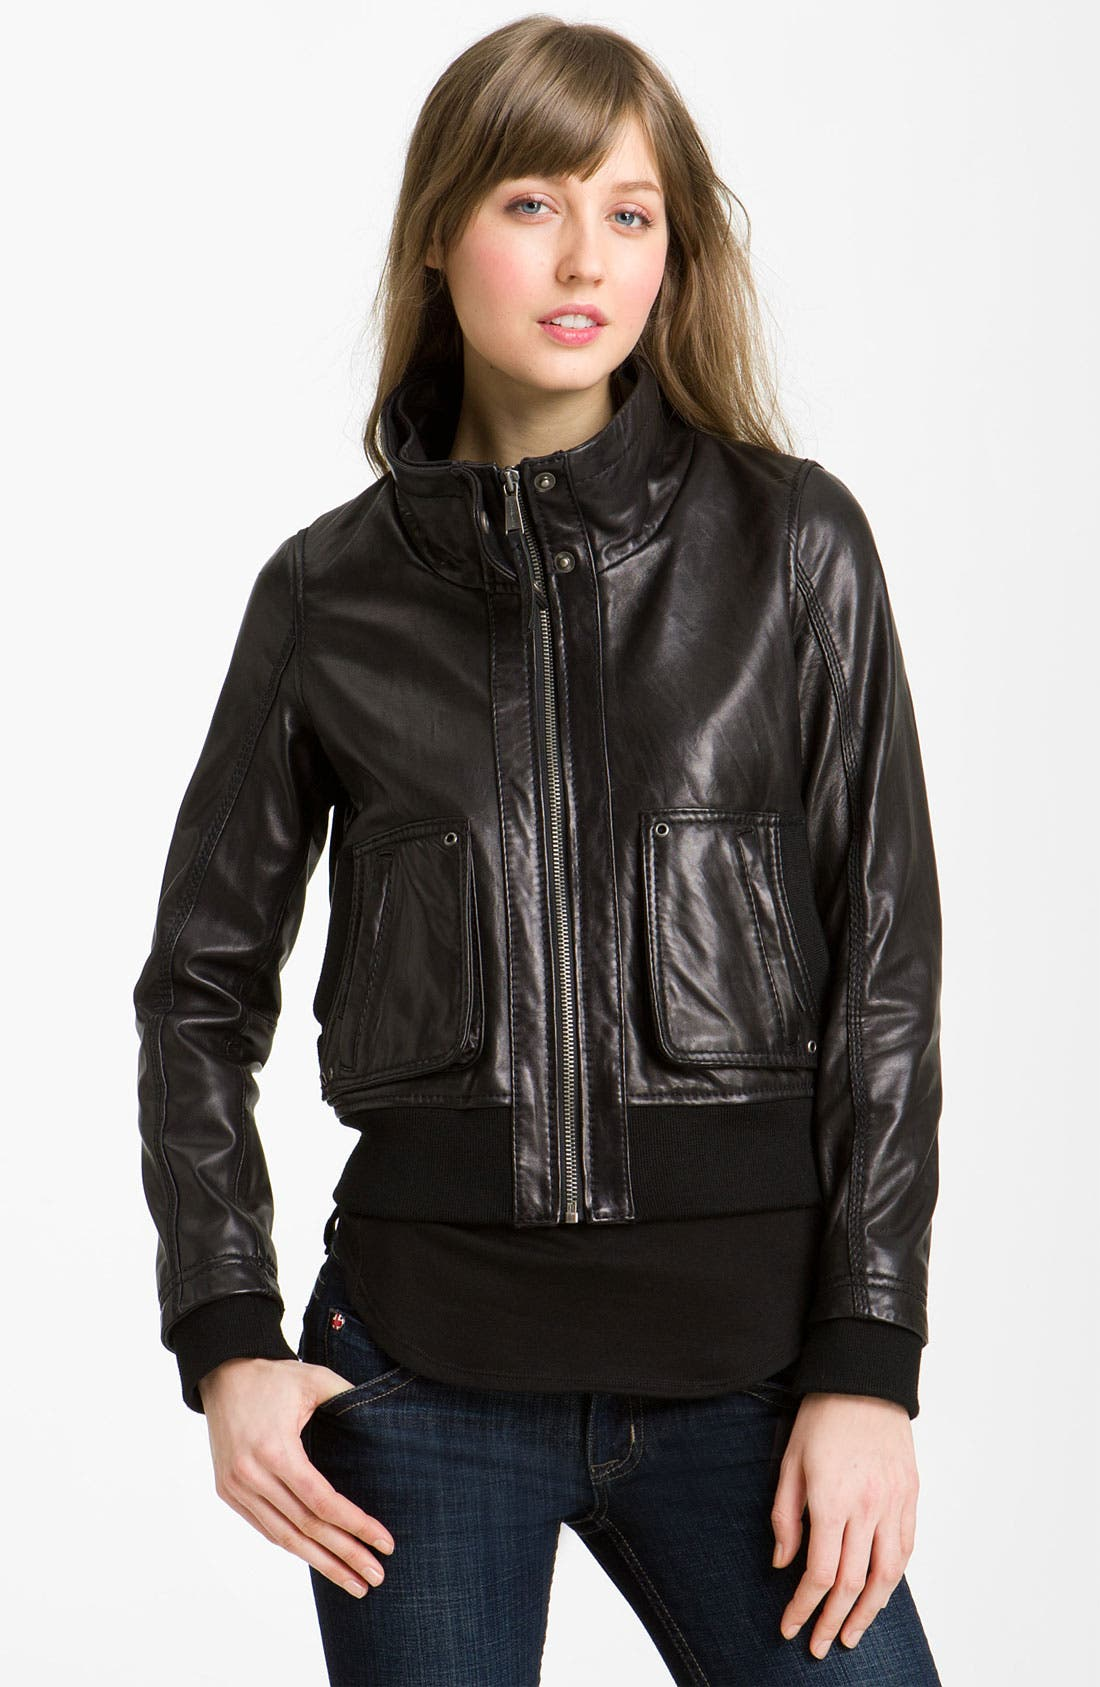 Alternate Image 1 Selected - MICHAEL Michael Kors Knit Trim Leather Bomber Jacket